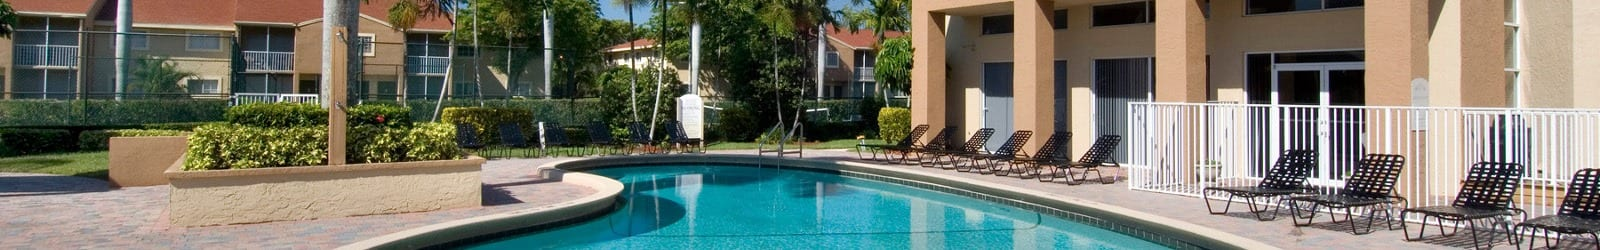 Schedule a tour to view our apartments in West Palm Beach, FL